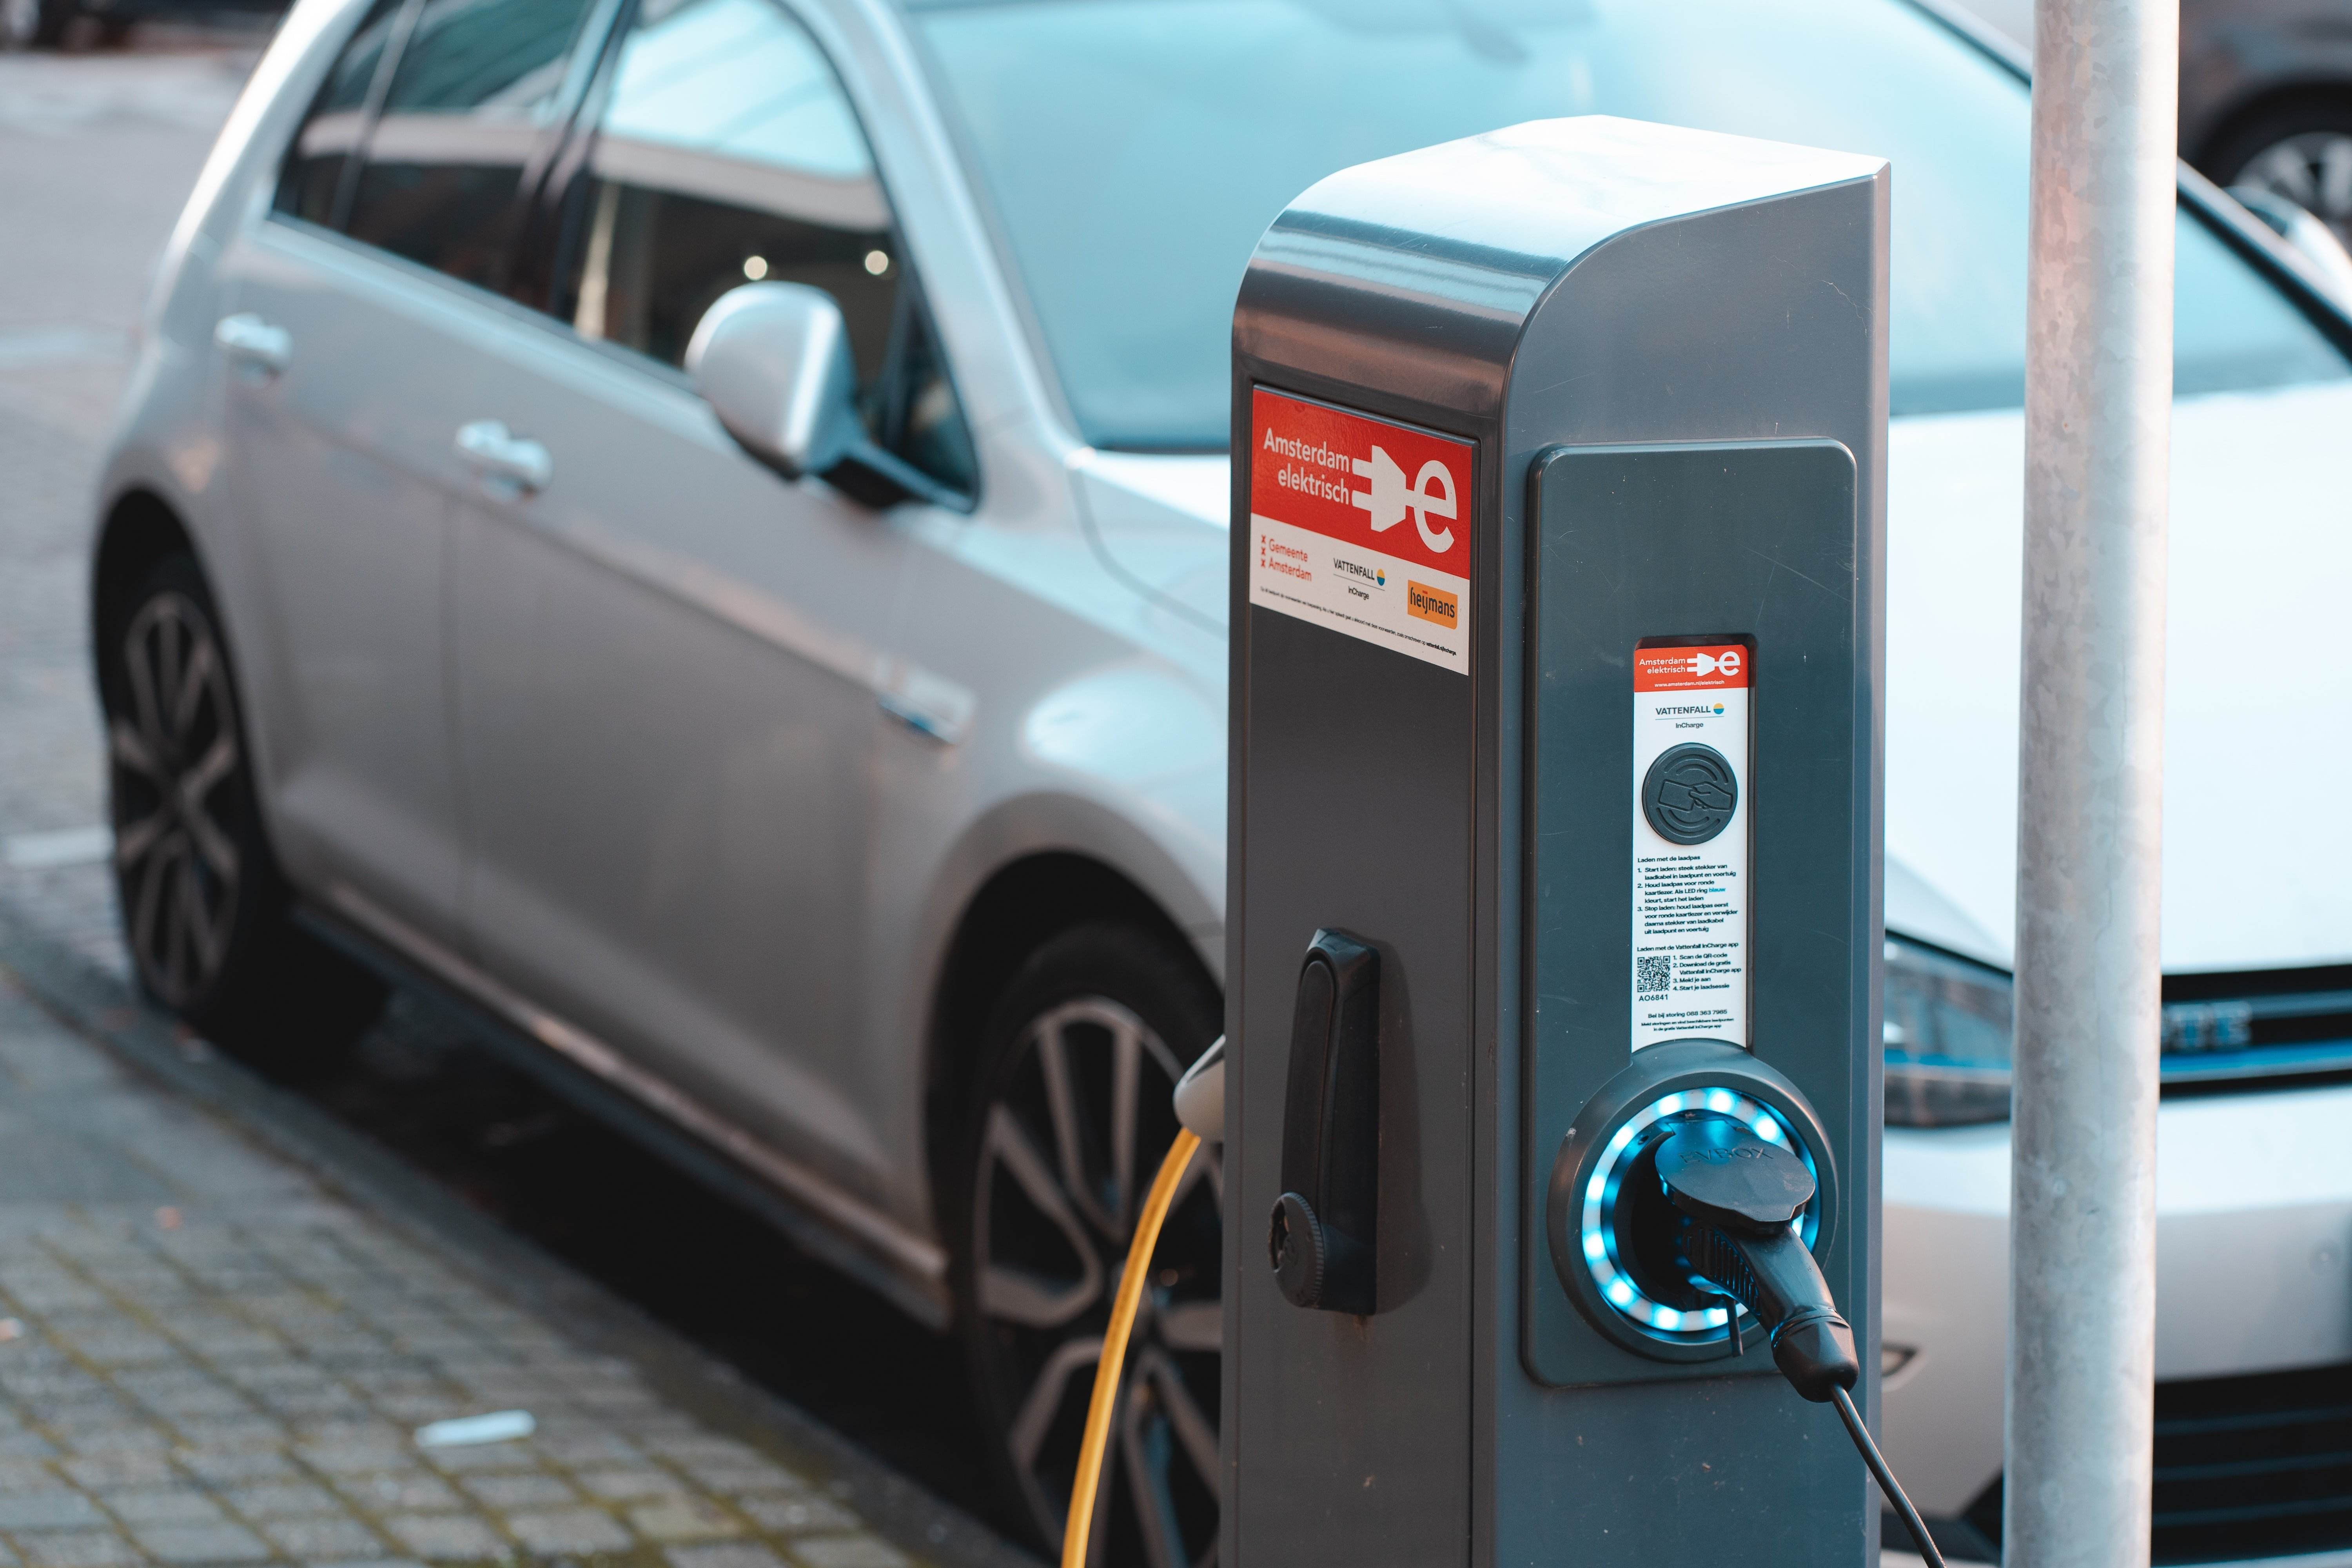 Eletric car being charged | Source: Unsplash